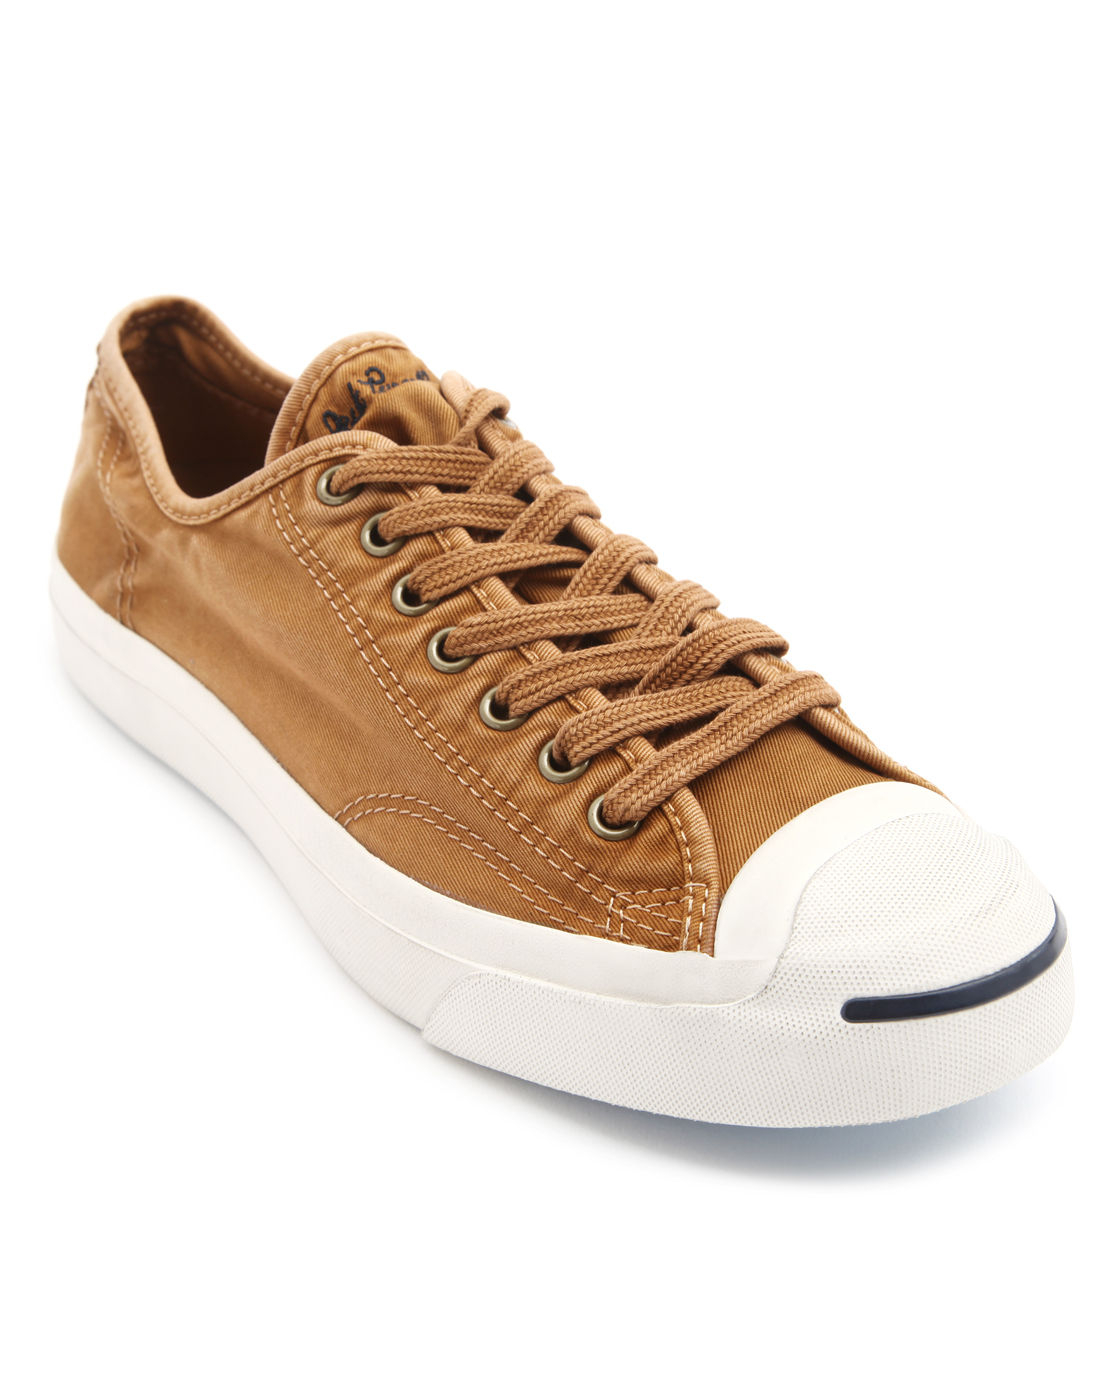 converse purcell camel wash canvas sneakers in brown